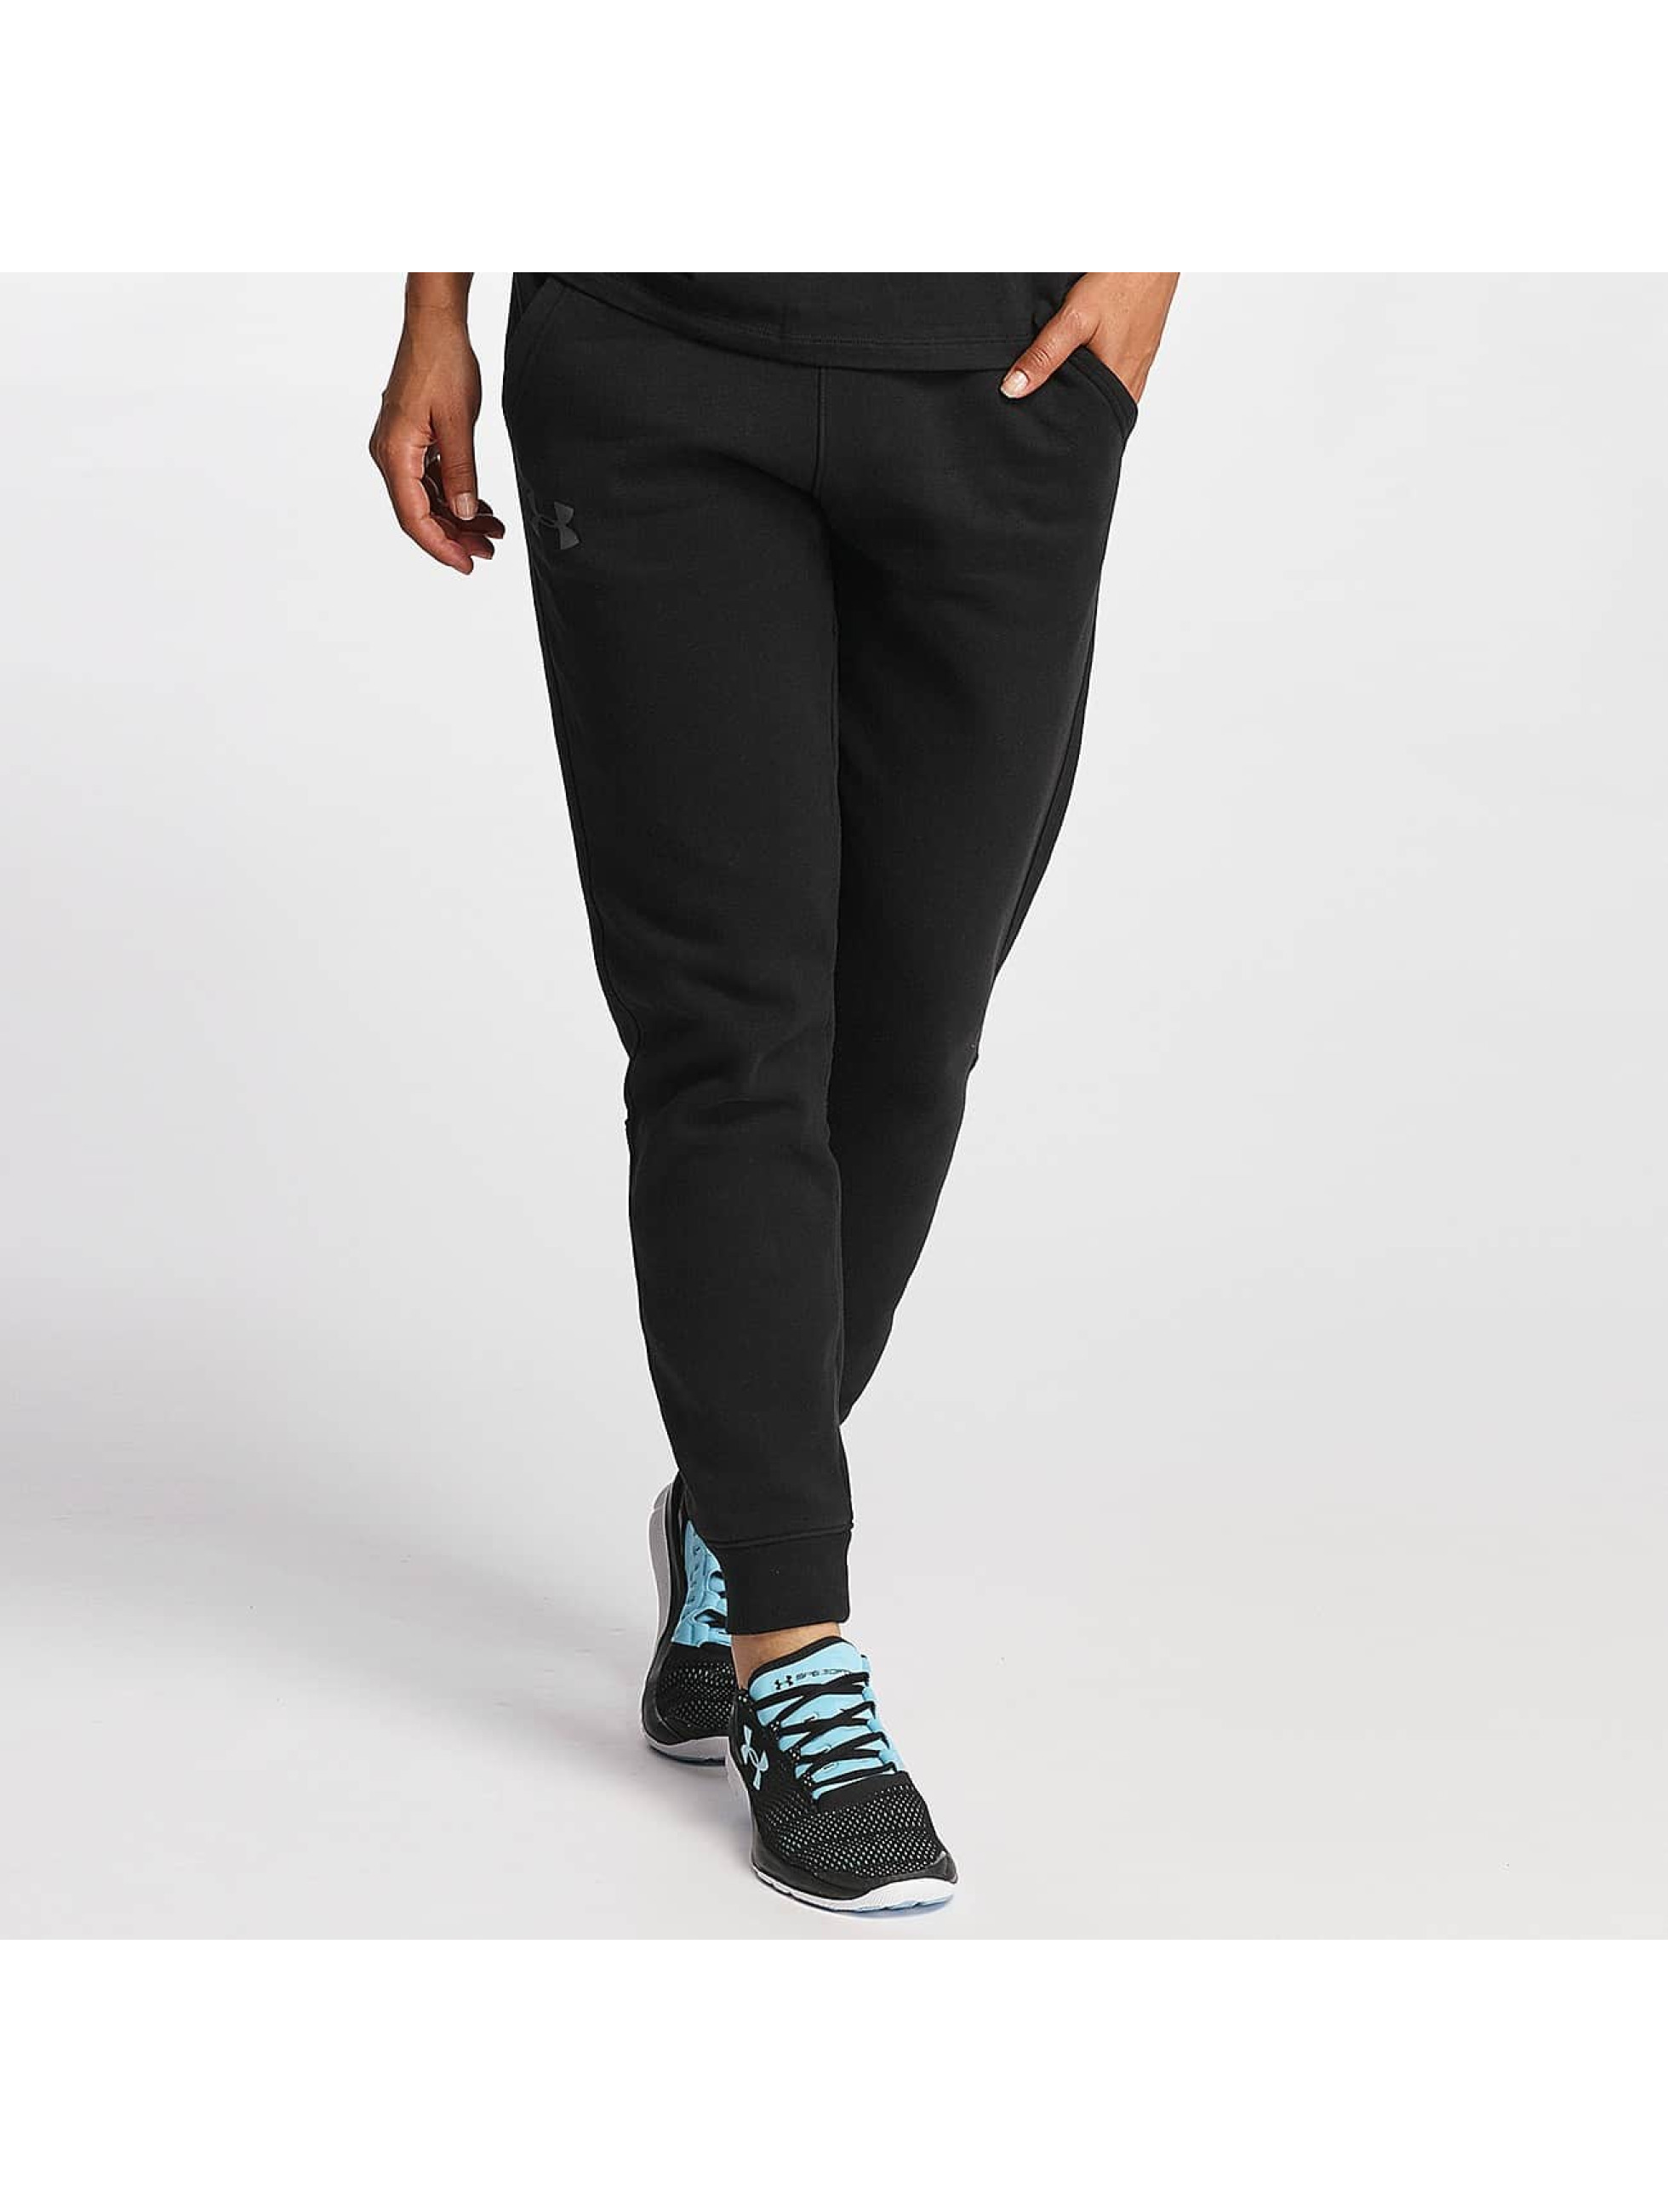 Under Armour Frauen Jogginghose Favorite Fleece in schwarz